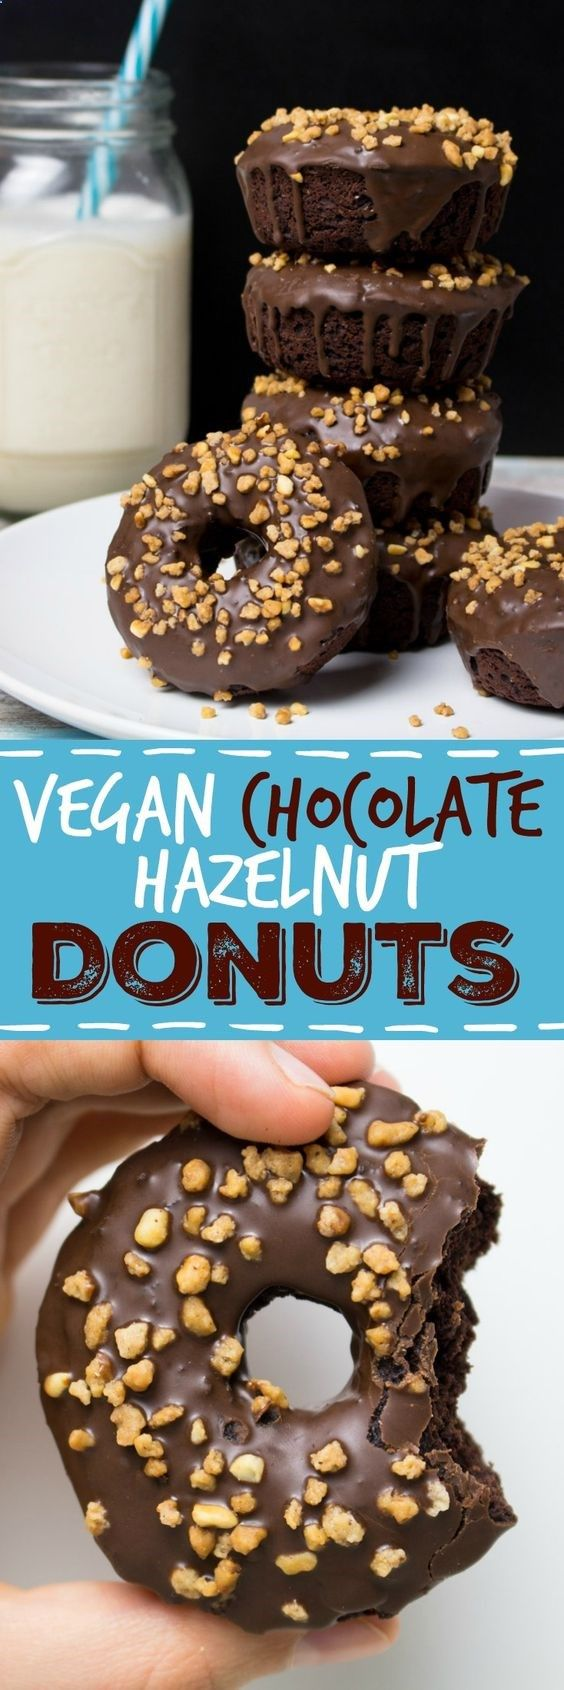 Vegan Chocolate Hazelnut Donuts with help from your high power blender! We cant wait to try this chocolate goodness!